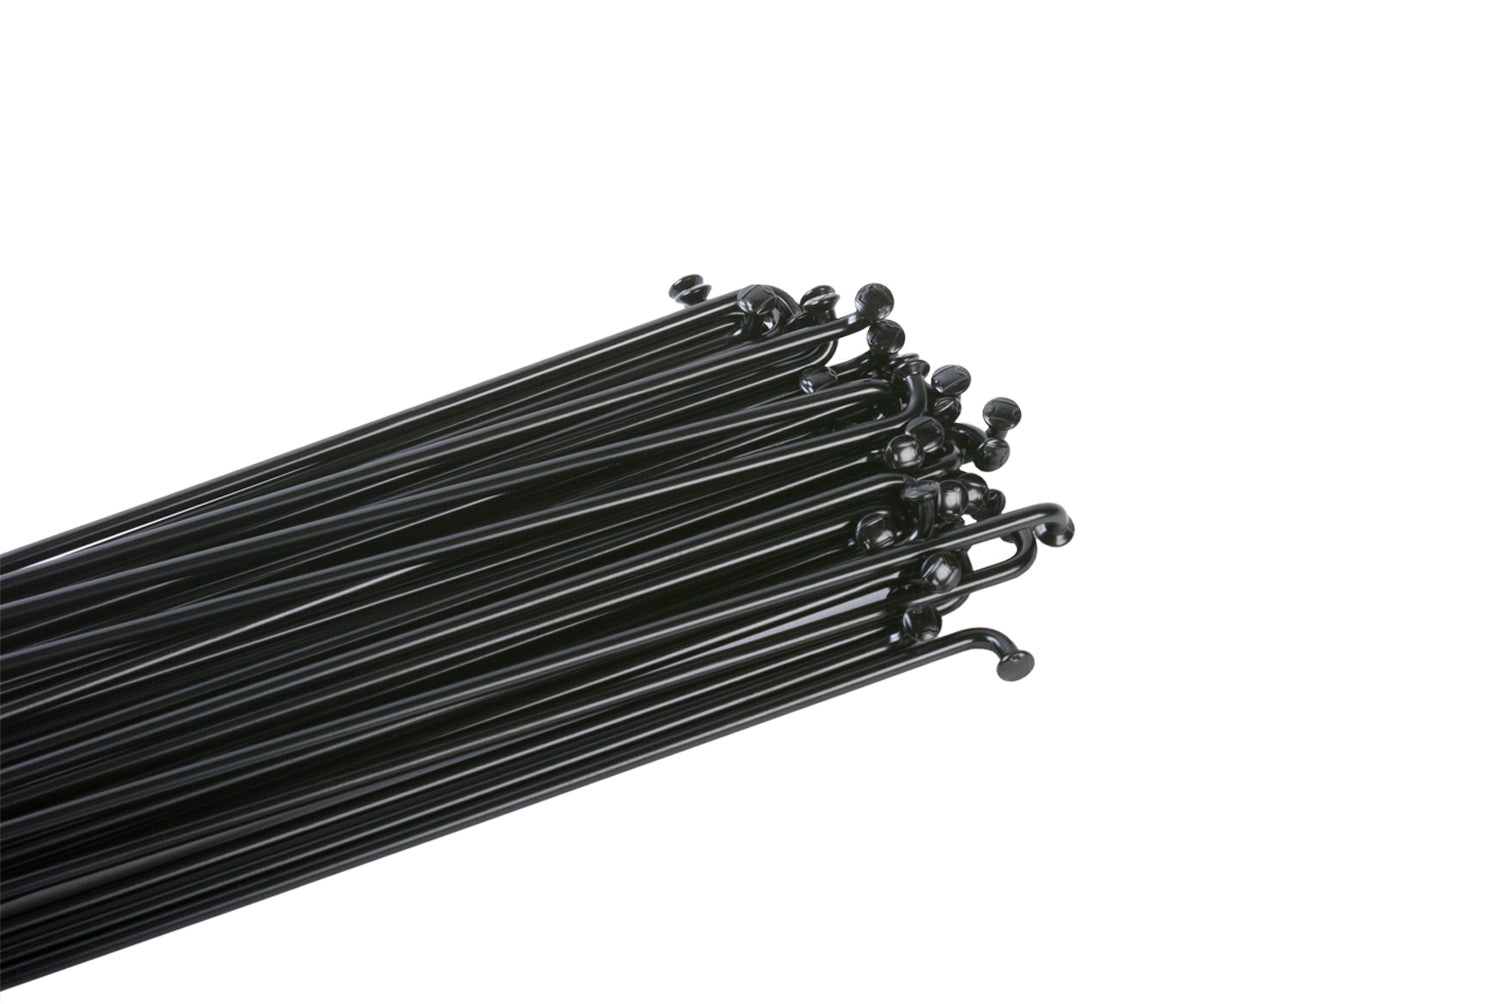 NEW Odyssey Stainless 14g Spokes 188mm Black Box of 40 Includes Spoke Nipples